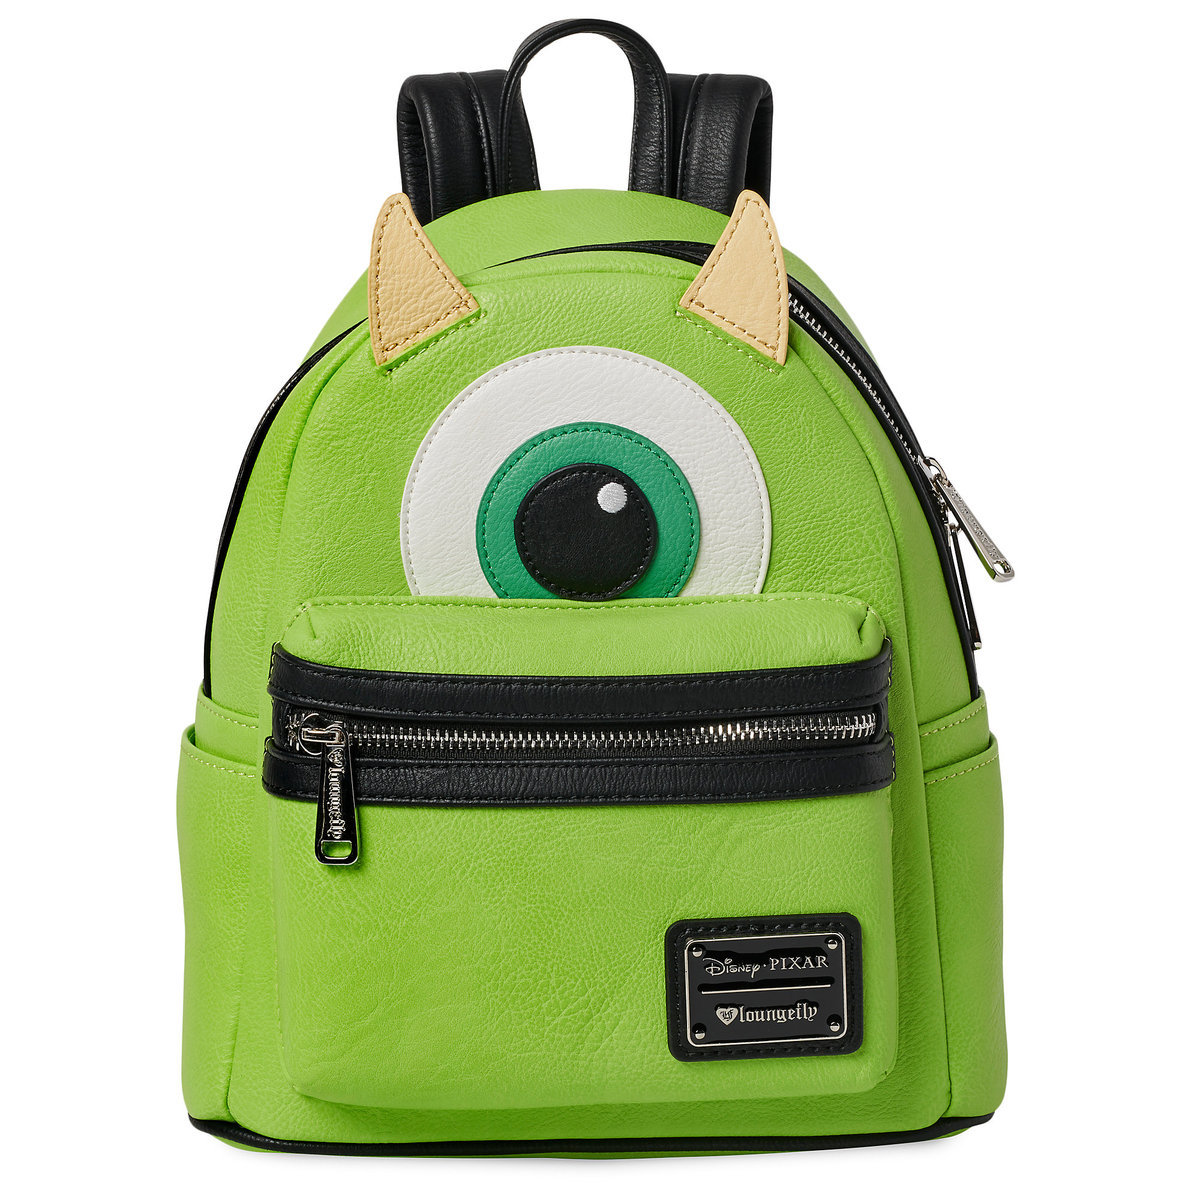 f7373723f31 Product Image of Mike Wazowski Fashion Backpack by Loungefly - Monsters